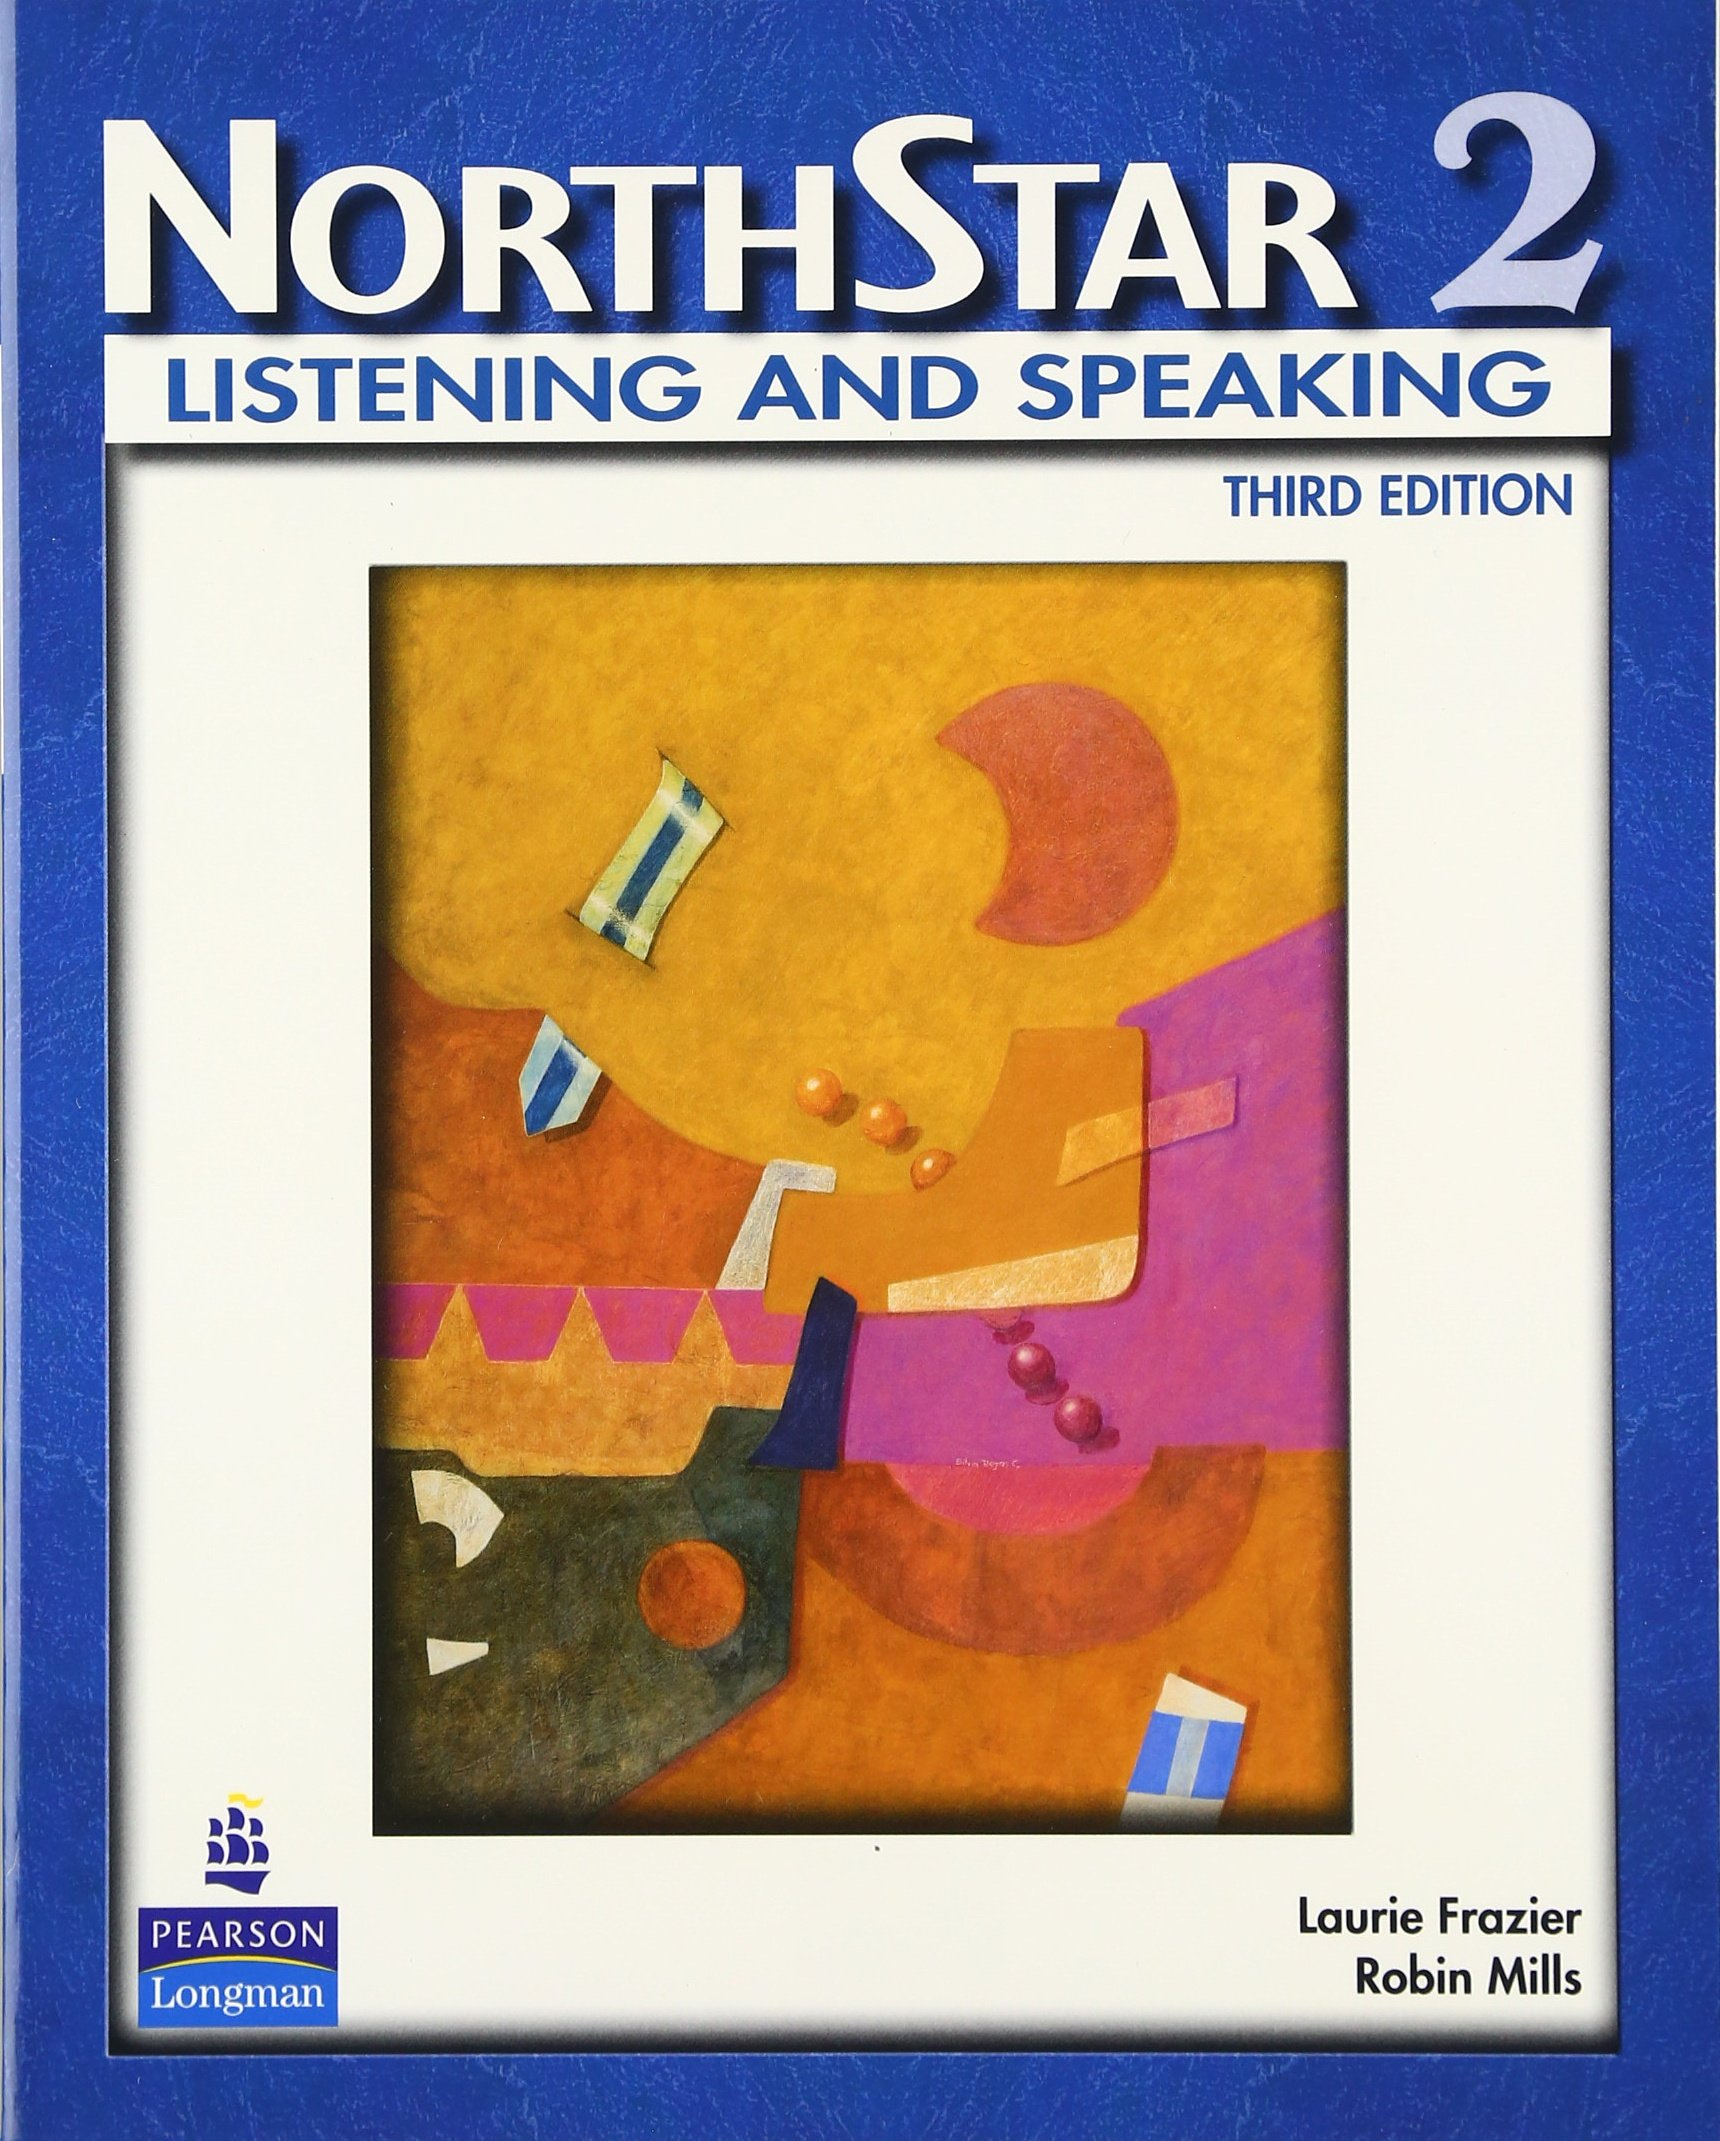 NorthStar, Listening and Speaking 2 (Student Book alone) (3rd Edition):  Robin Mills, Laurie Frazier: 9780132409889: Books - Amazon.ca